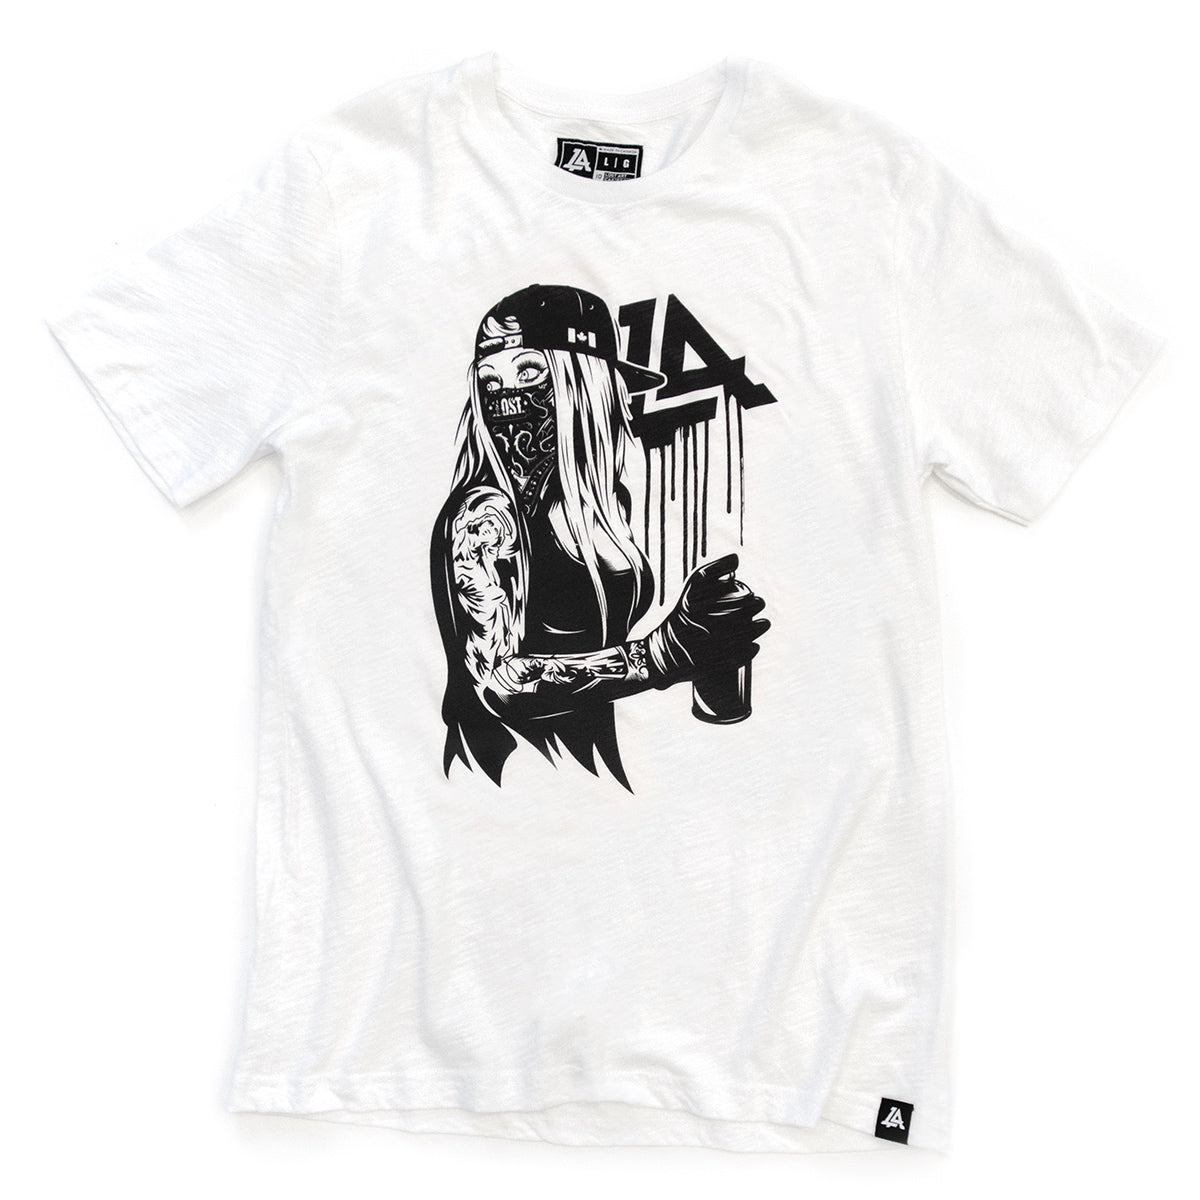 Lost Art Canada - white and black graffiti vandal tee front view